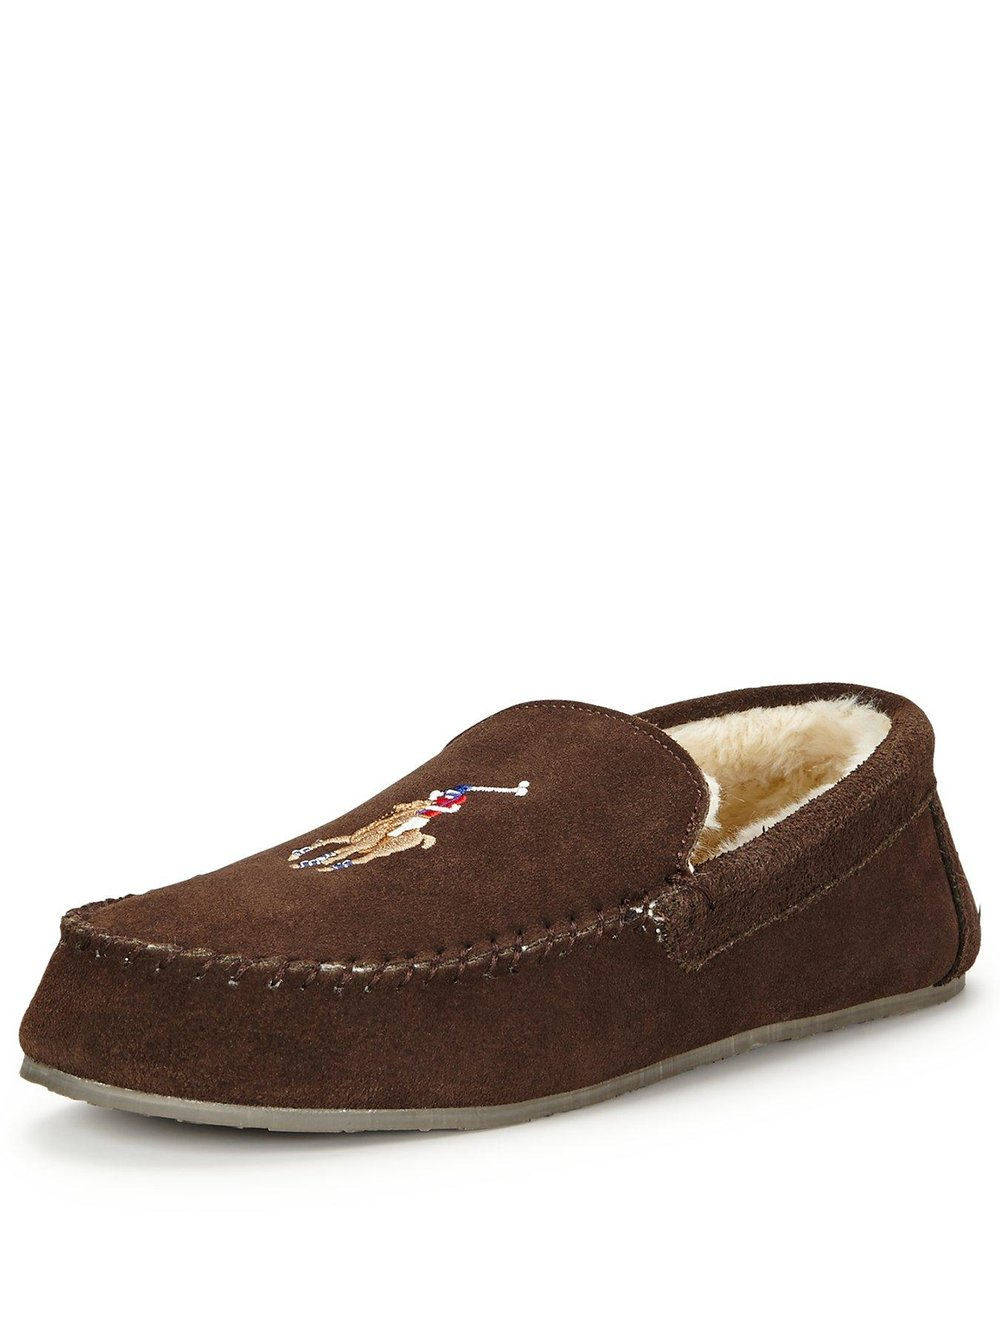 Ralph Lauren Moccasin Slipper £79.00 at Very